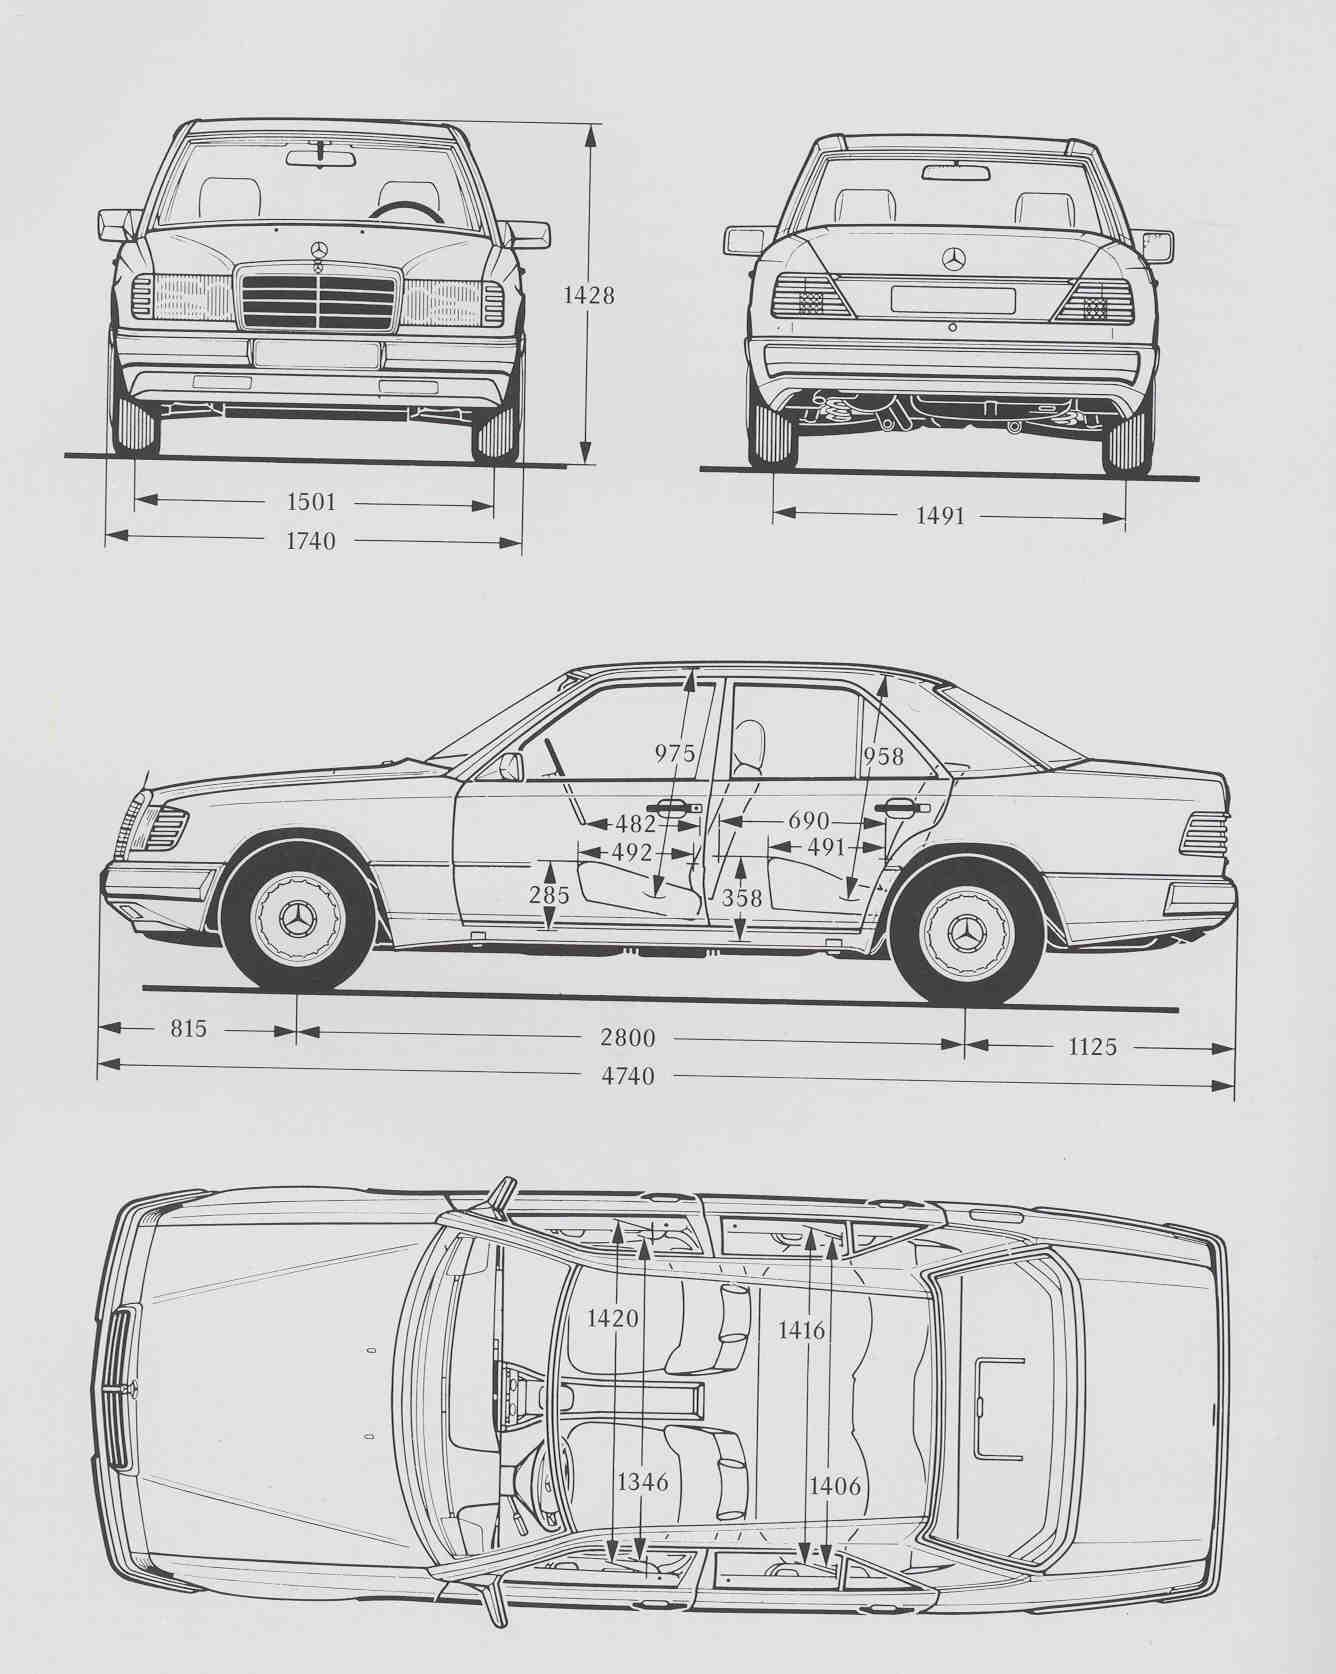 mercedes-benz w124 blueprint